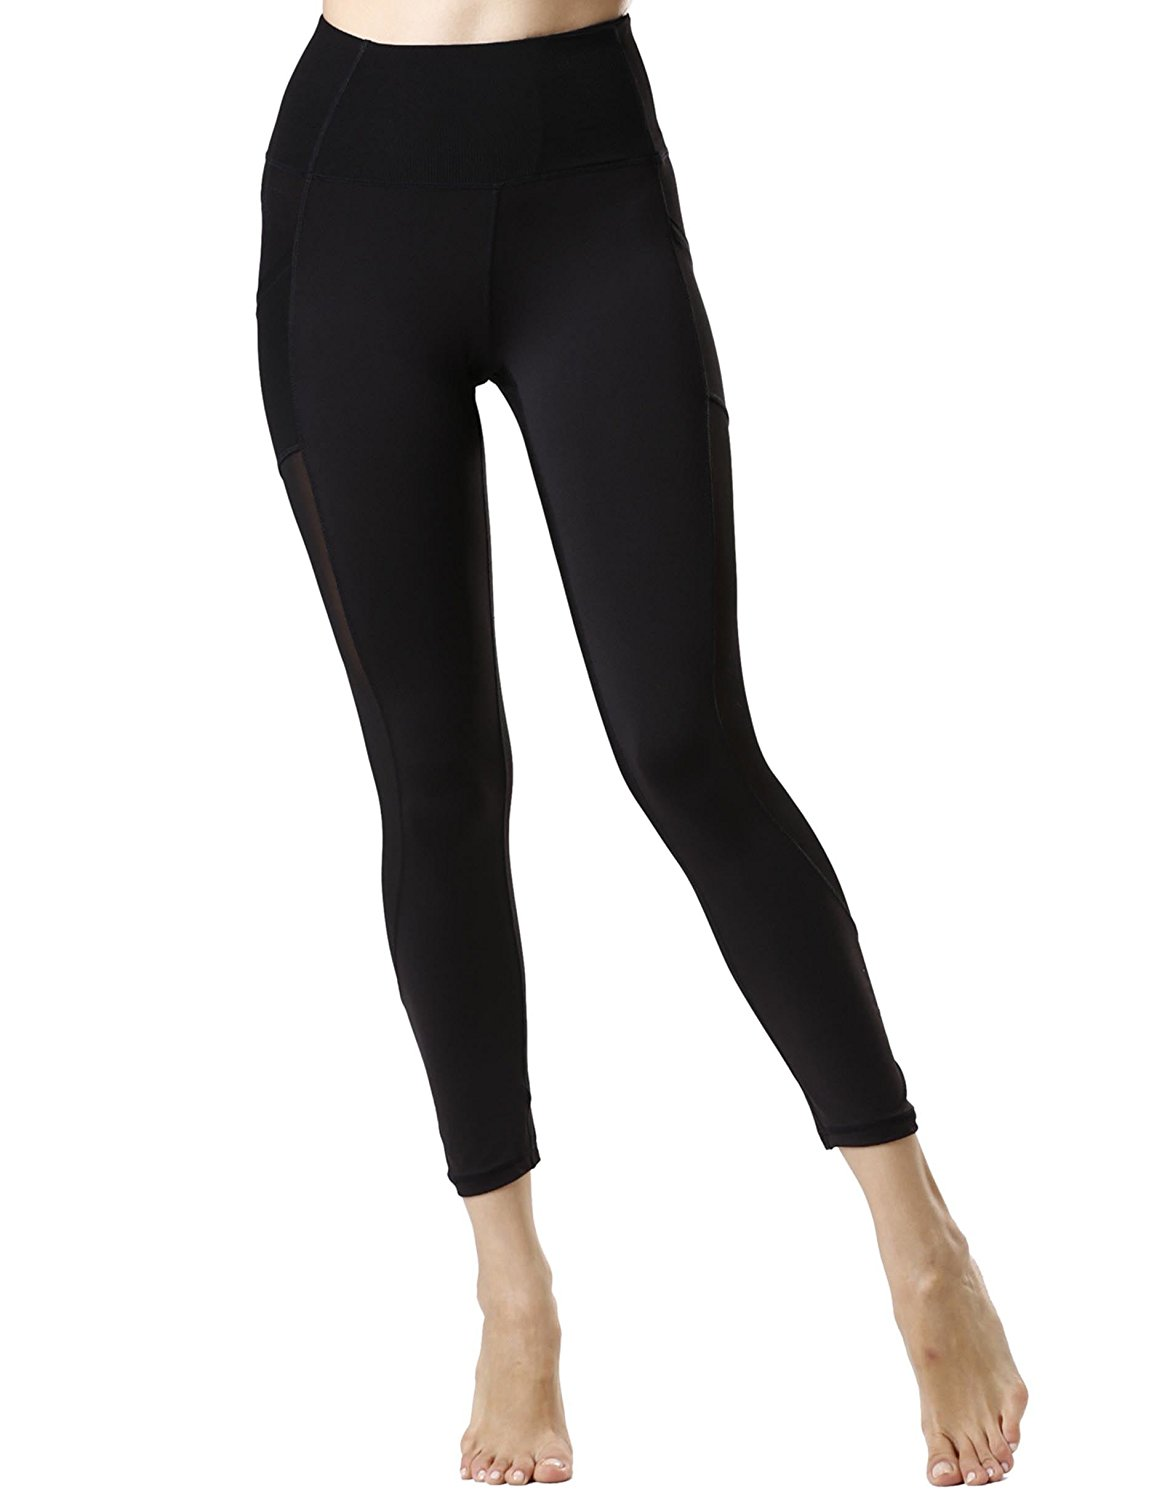 52941820578866 Get Quotations · icyZone Tummy Control Slimming Shaping High Waist Yoga  Tights Leggings with Mesh